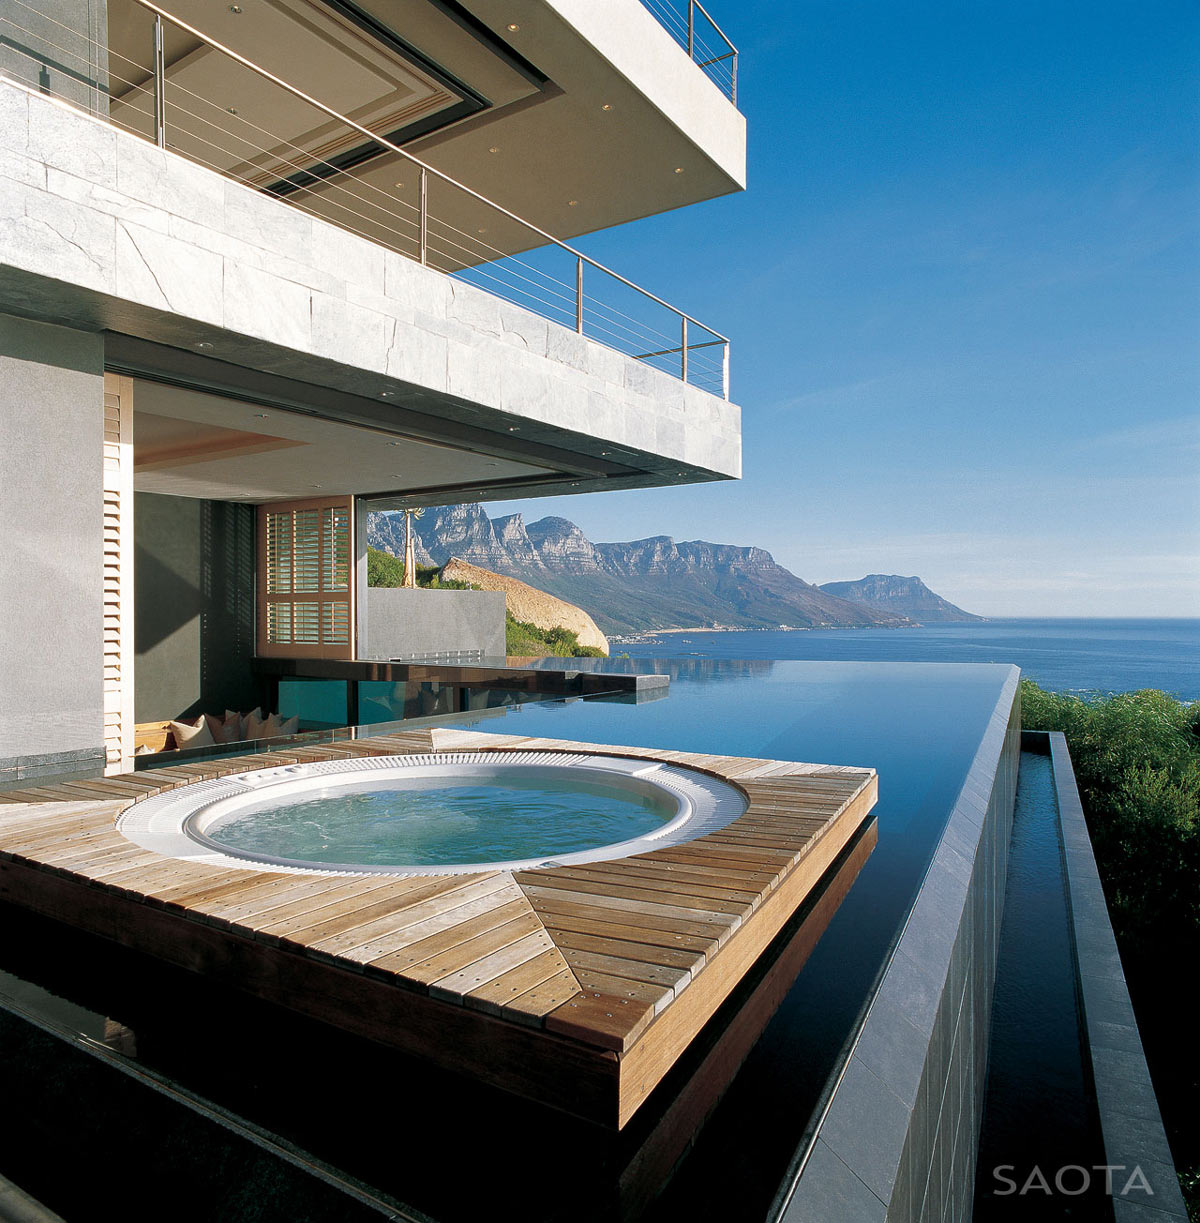 Jacuzzi In The Pool St Leon 10 In Cape Town South Africa By Saota And Antoni